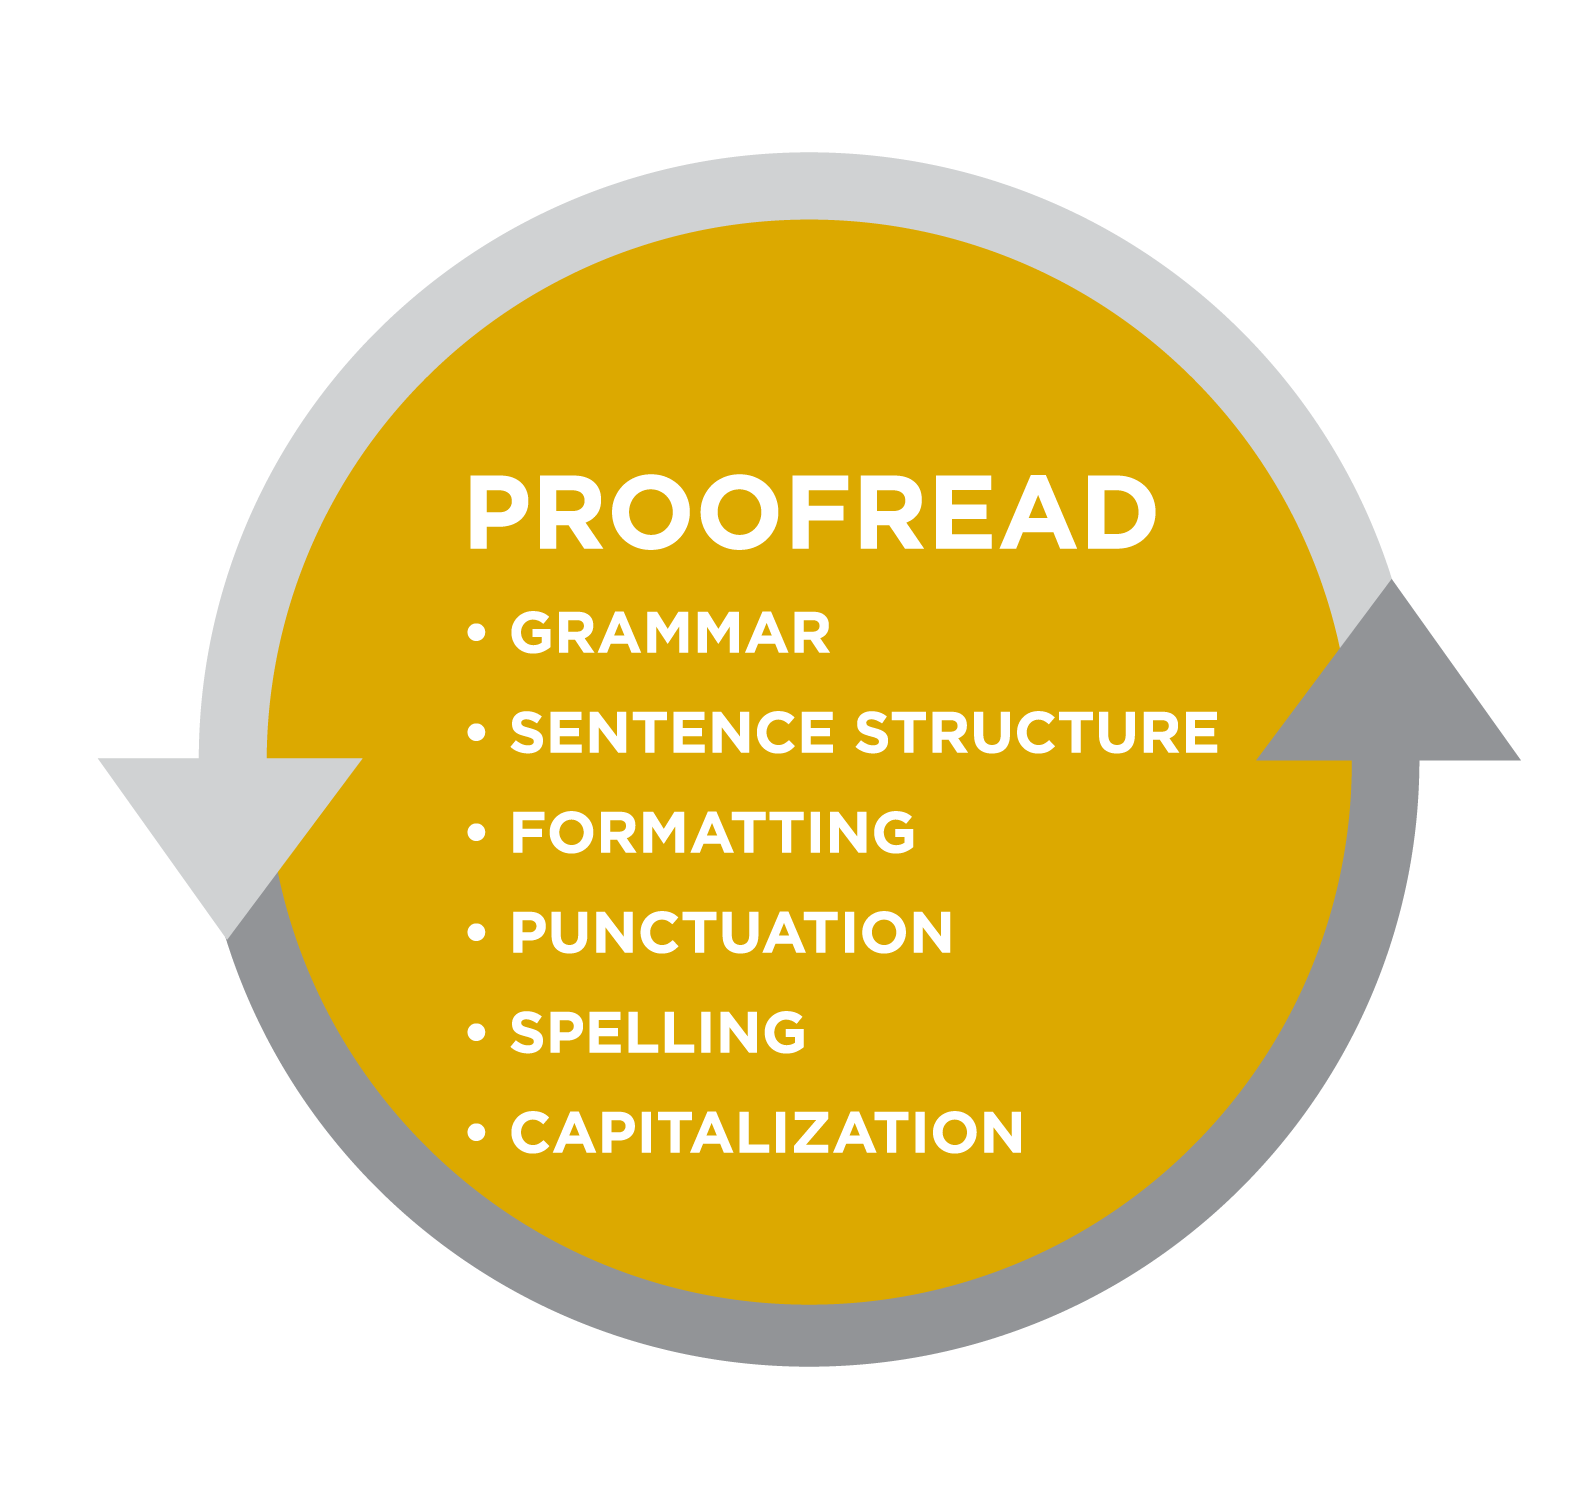 Proofread define